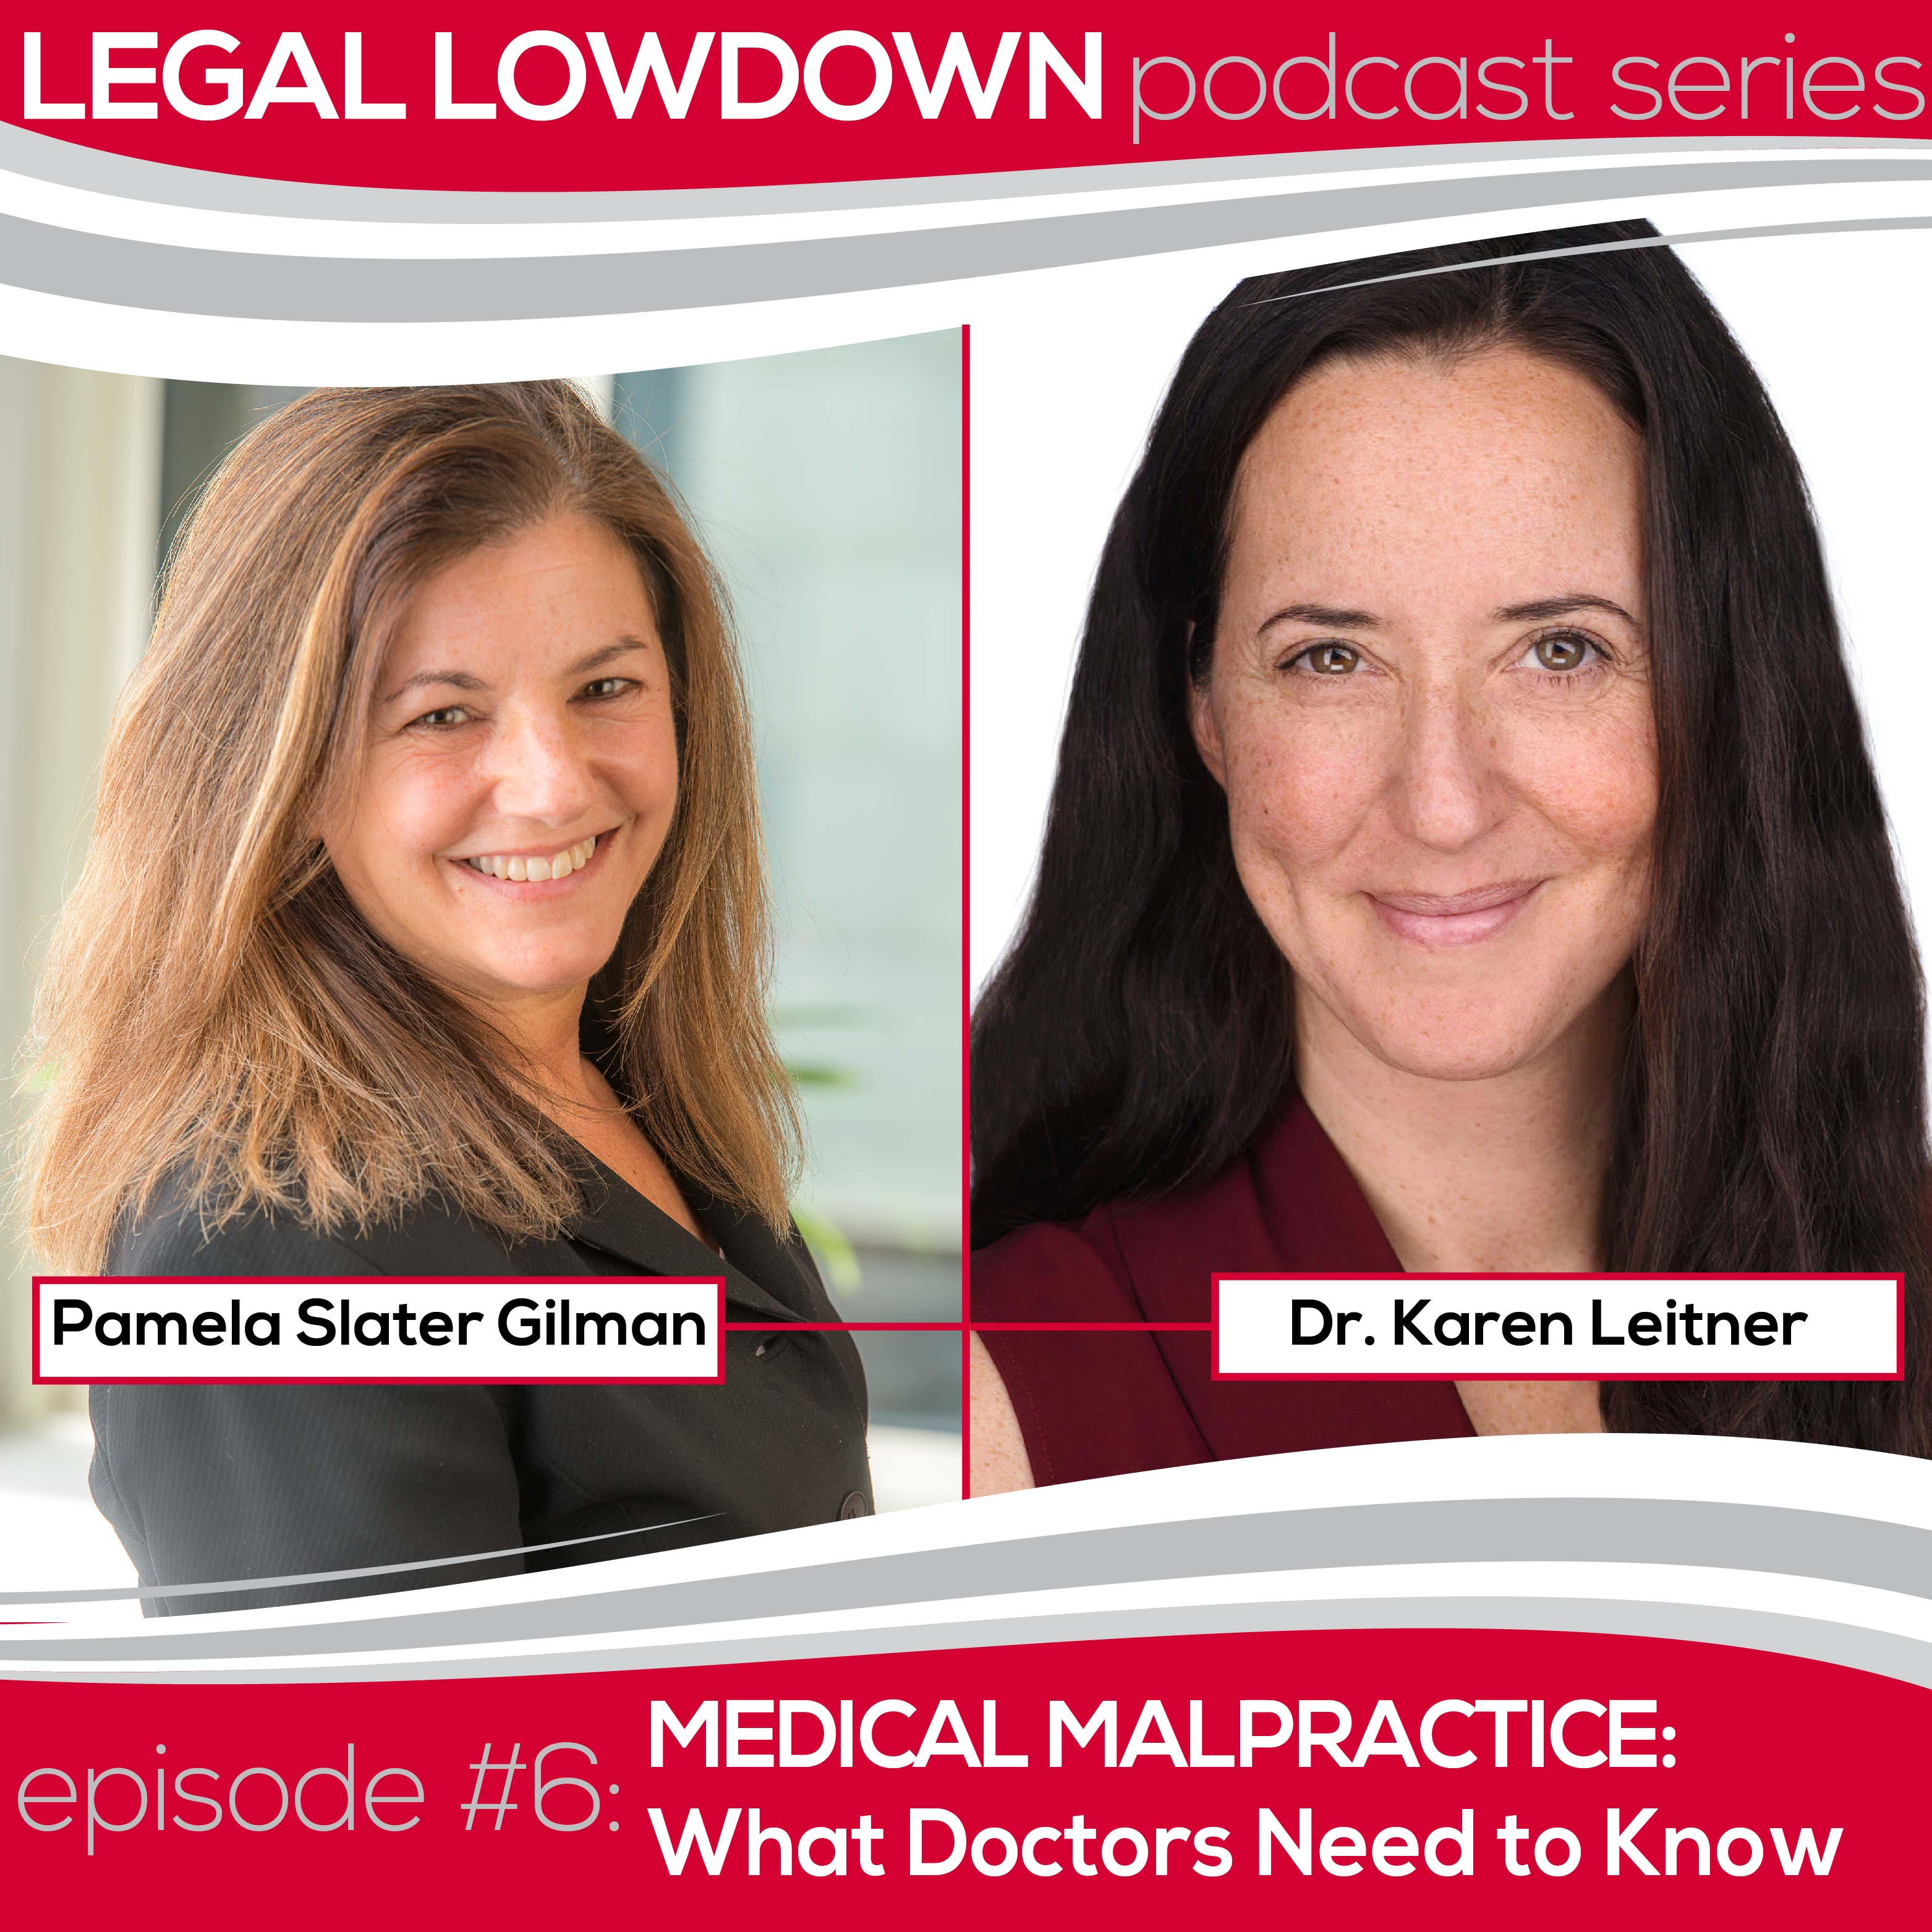 Legal Lowdown Podcast – Episode #6 – Medical Malpractice: What doctors need to know